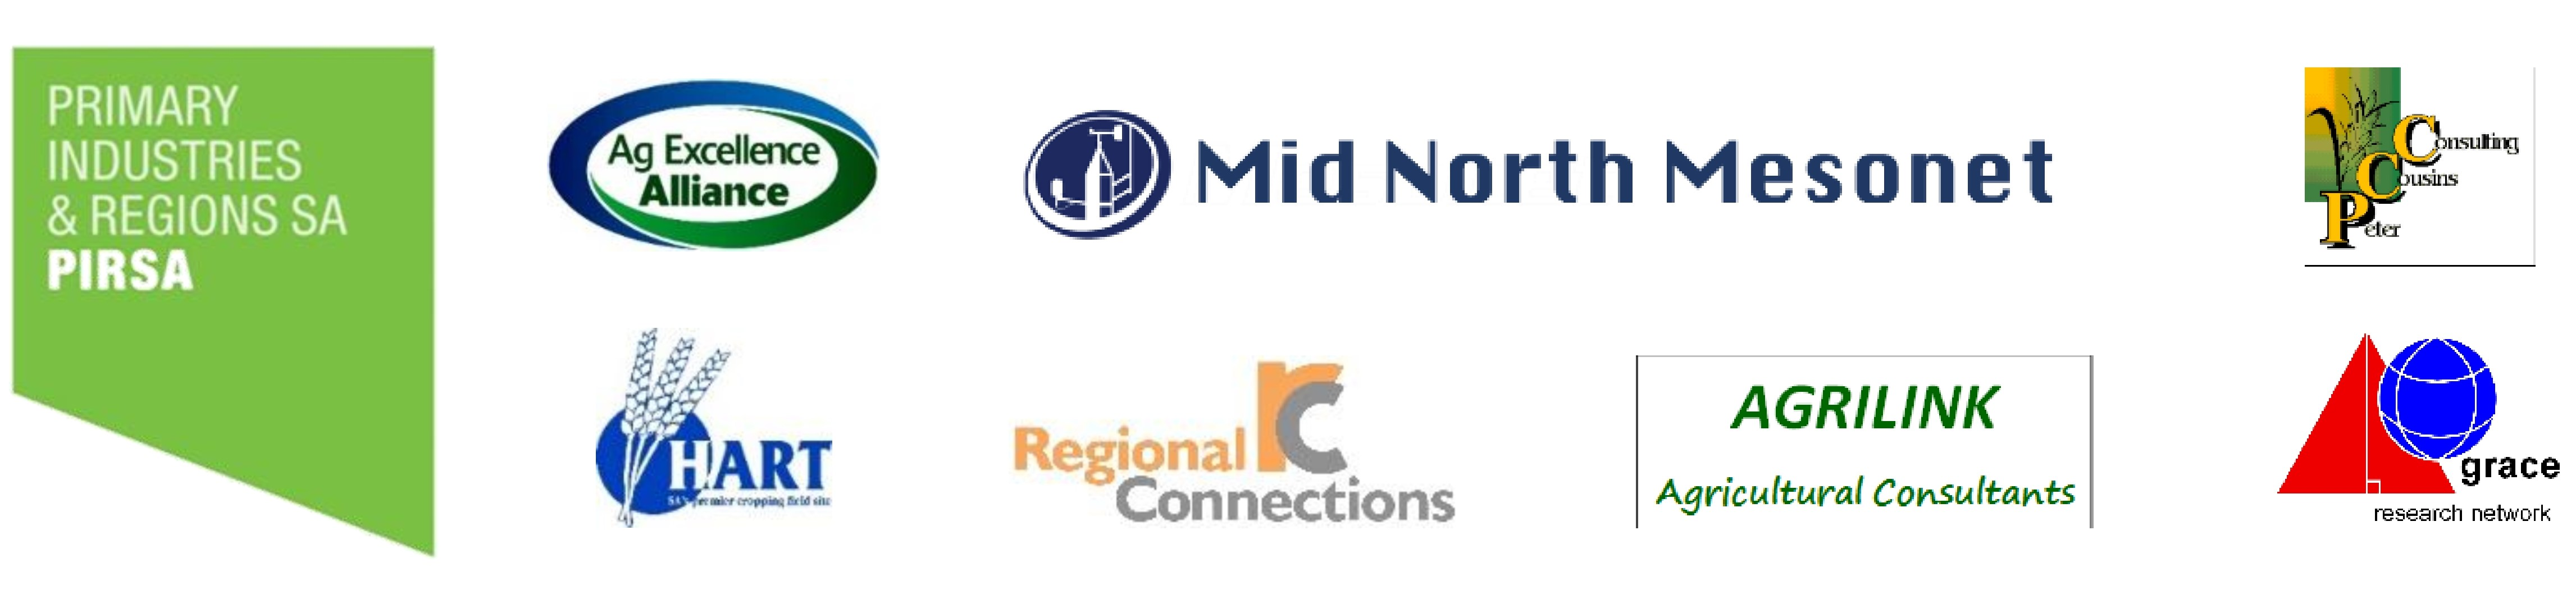 Mid North Mesonet partners